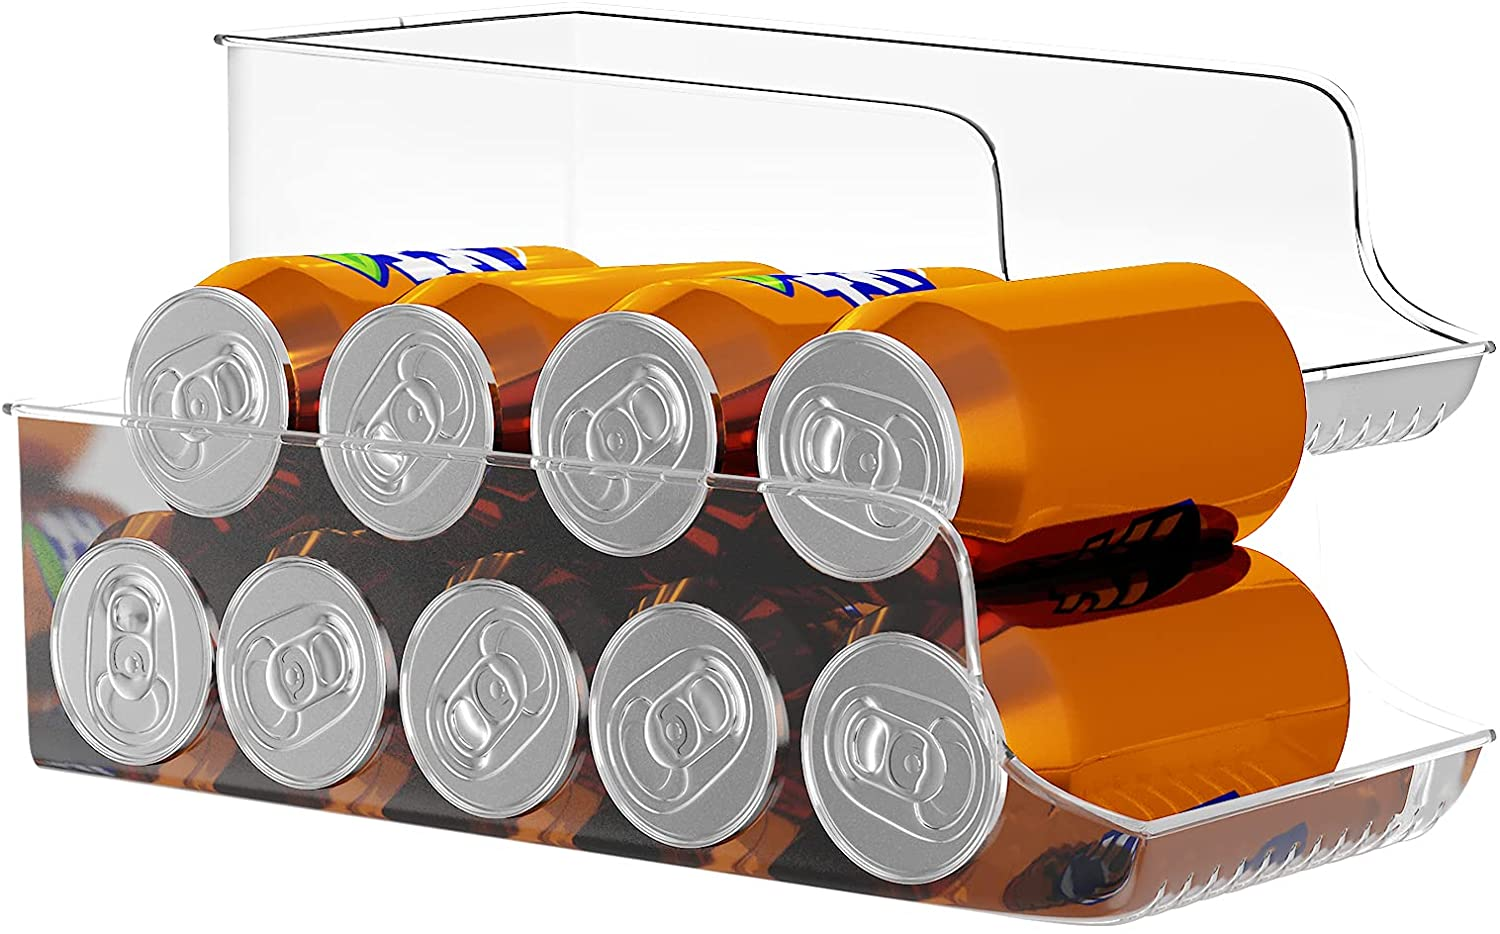 Anawin Refrigerator Organizer, 2 PCS a Set Fridge Organizer Bins for Refrigerator, Clear Plastic Canned Food Pantry Storage Rack for Freezer, Kitchen, Countertops, Cabinets, Soda Can Organizer